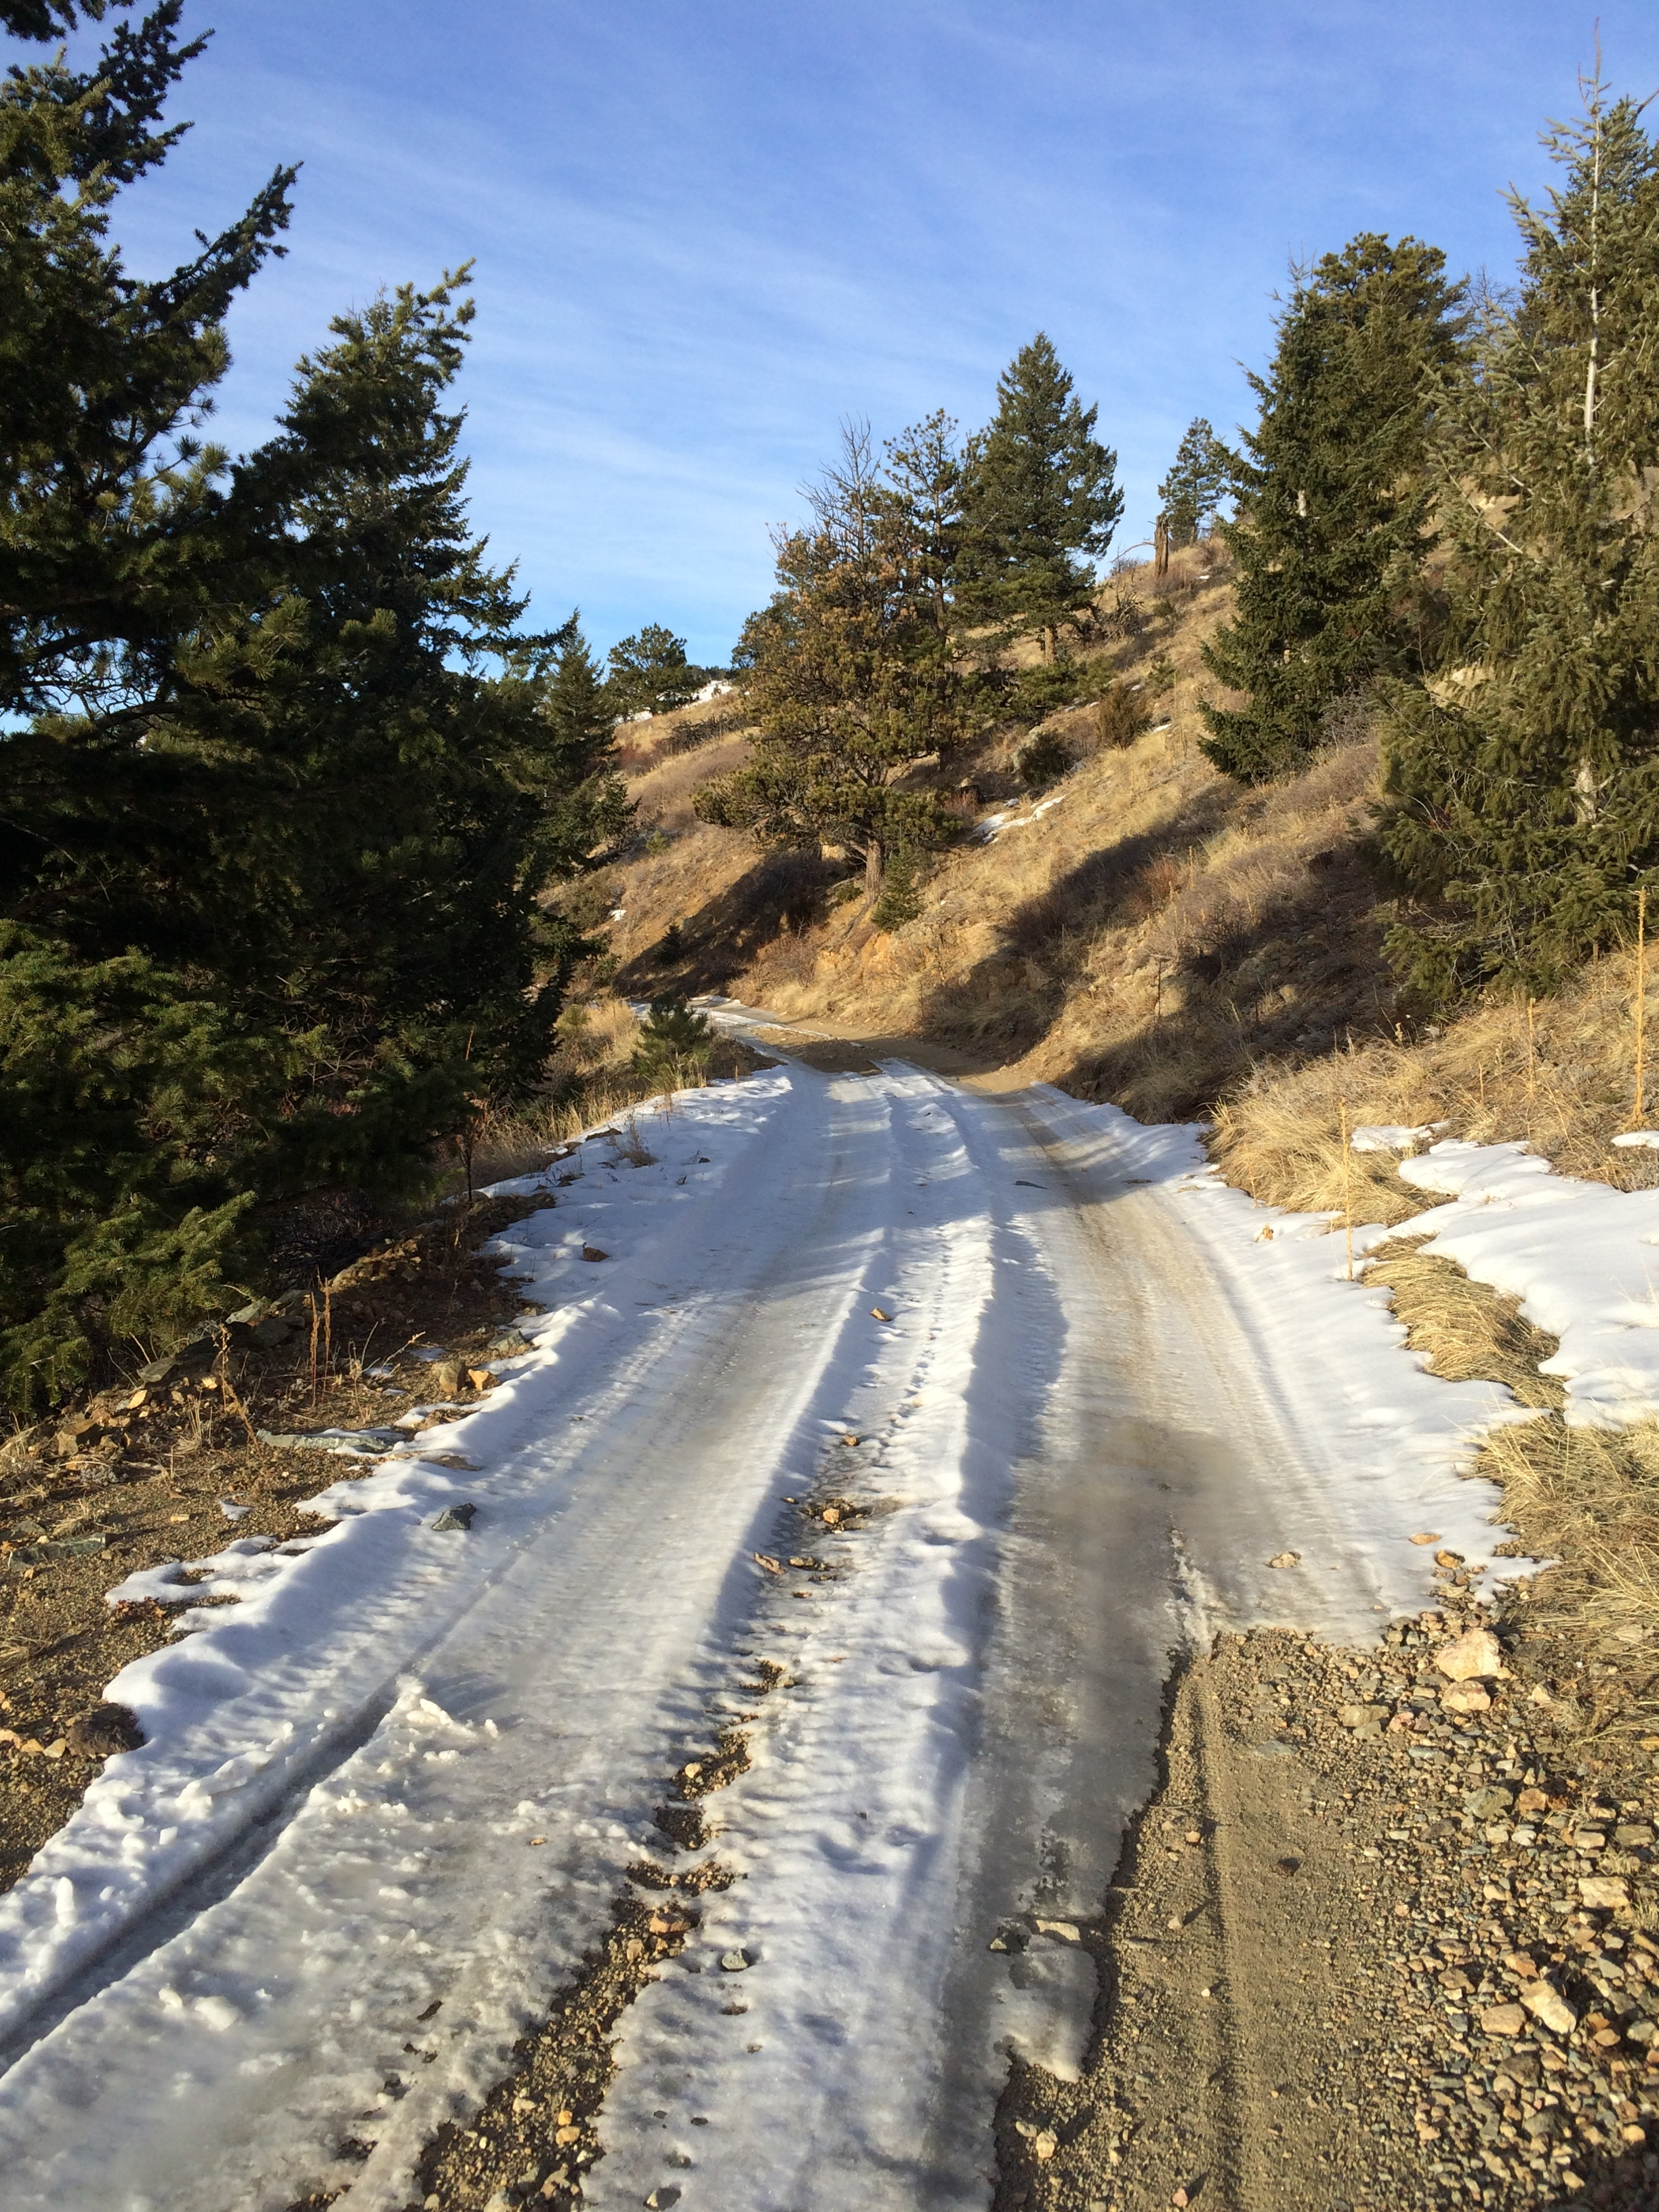 Road conditions were a mix of hard pack snow, ice and dry dirt roads.